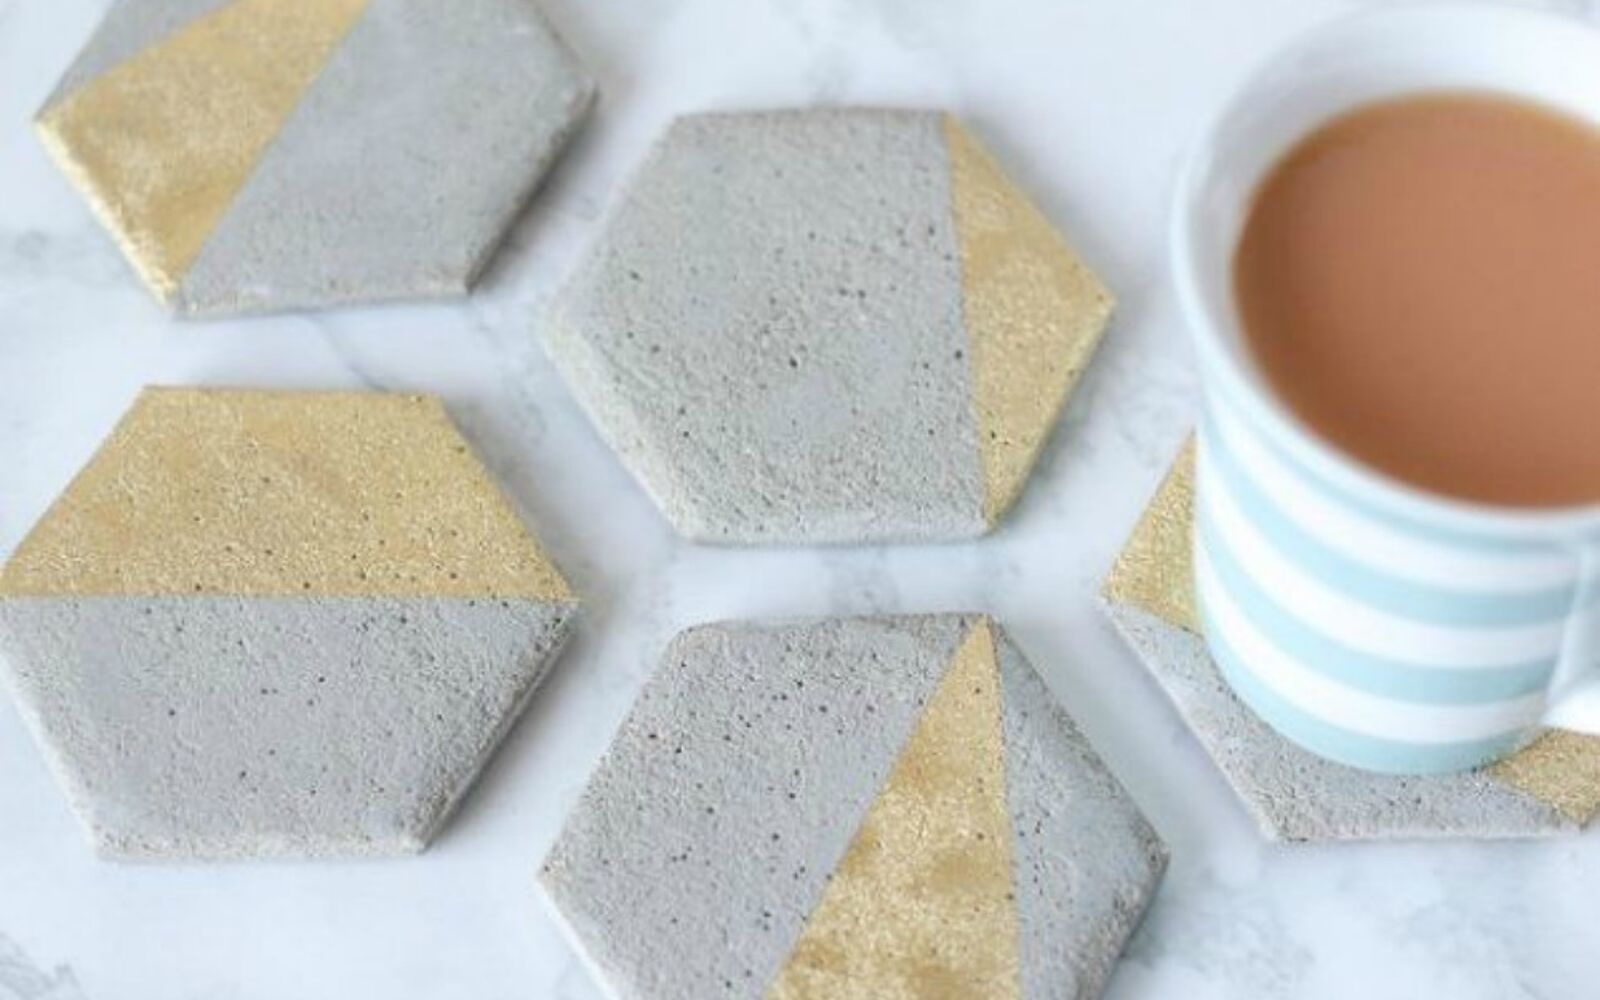 s 14 stunning ways to add cement to your home decor, concrete masonry, home decor, Make it into cool hexagon coasters